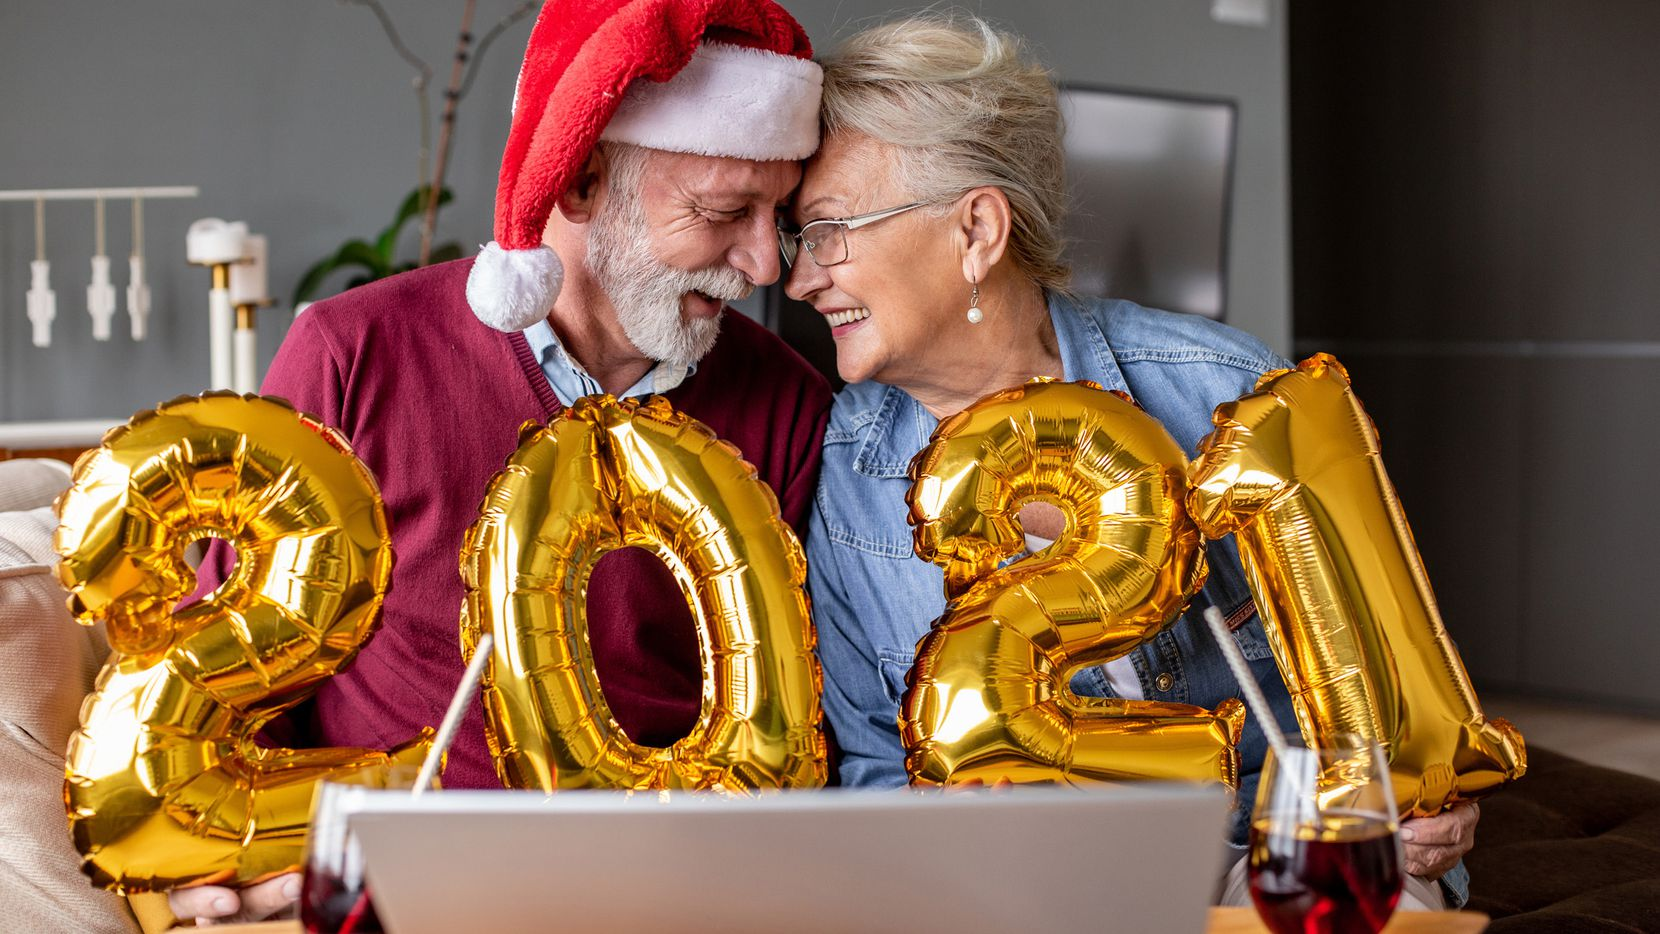 People born in 1955 are reaching full retirement age in 2021 and have to be 66 and 2 months to collect benefits.